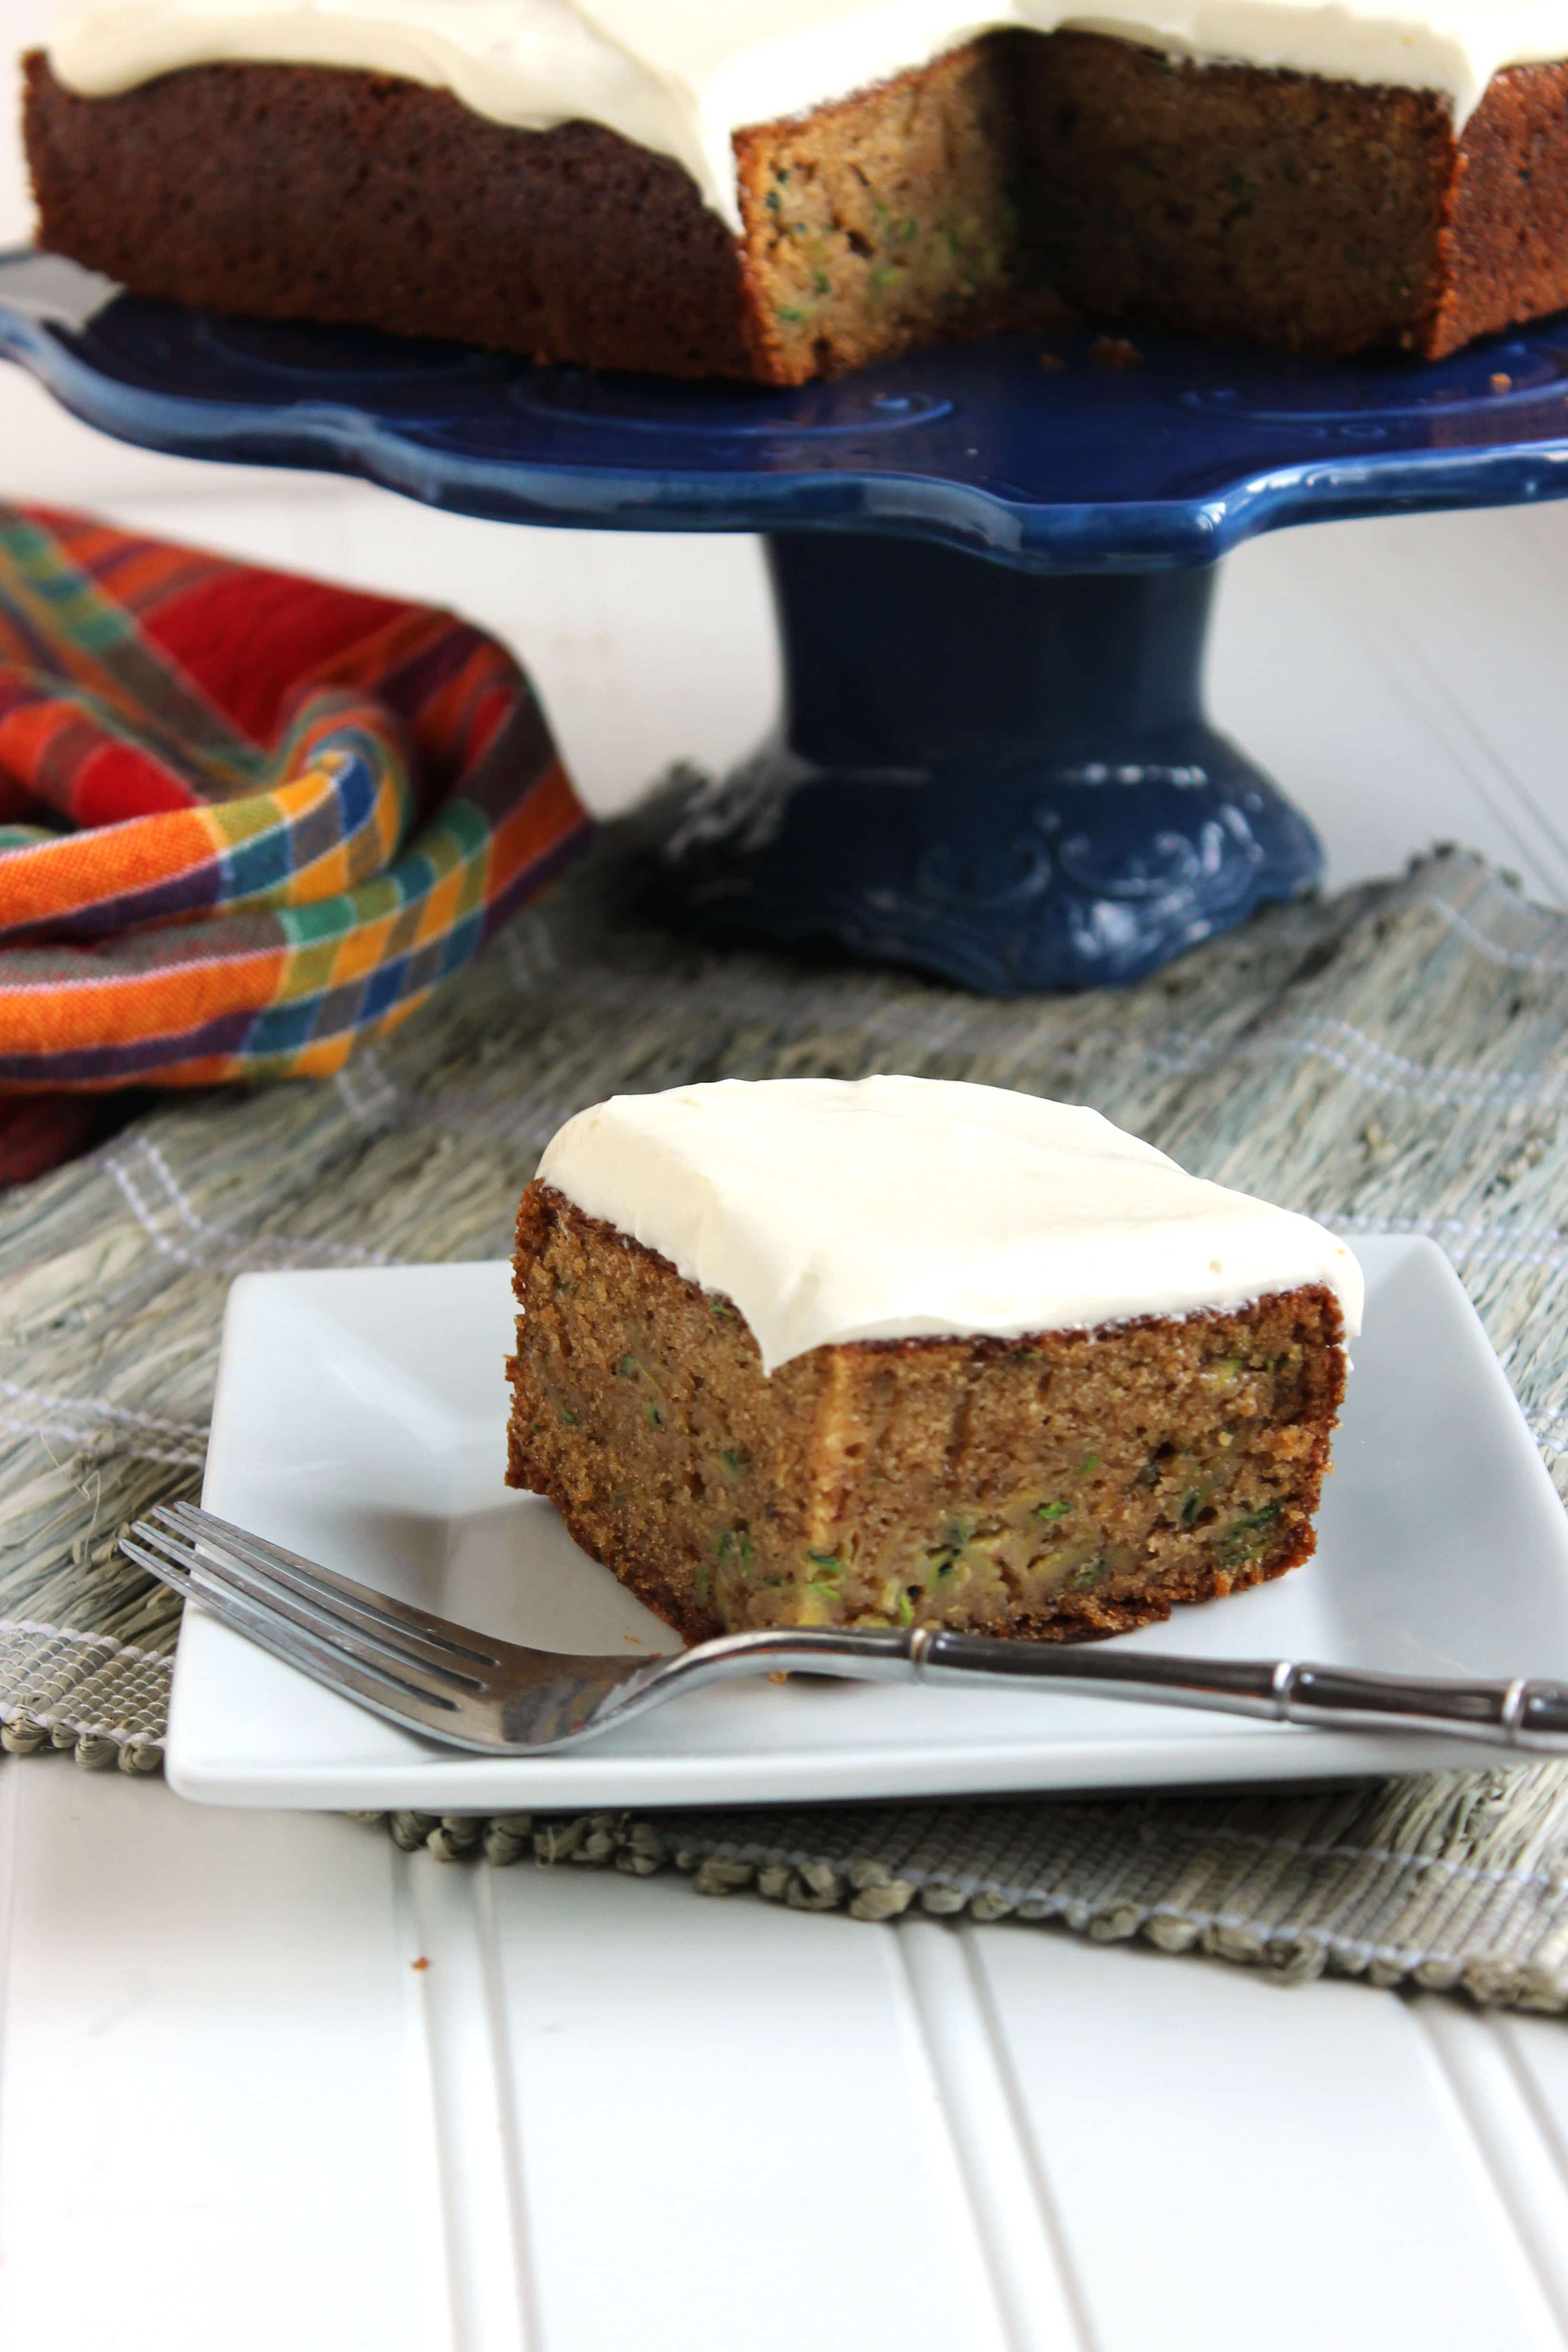 Spiced Zucchini Cake With White Chocolate Cream Cheese Frosting Kue Brownis By Nature Cakes Bali The Suburban Soapbox